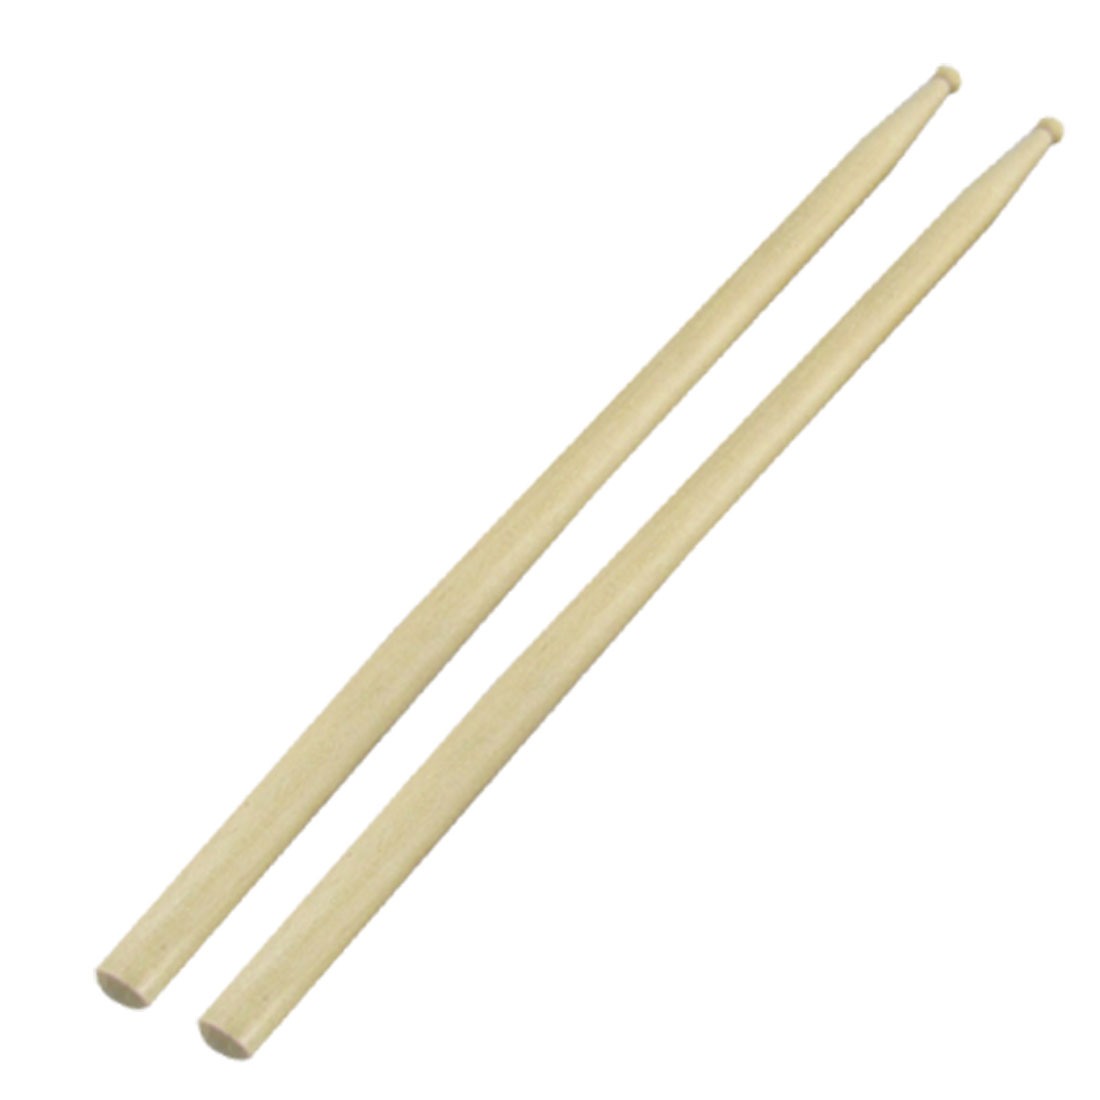 Beginner Musical Pair Wooden 5A Drumsticks Drum Sticks